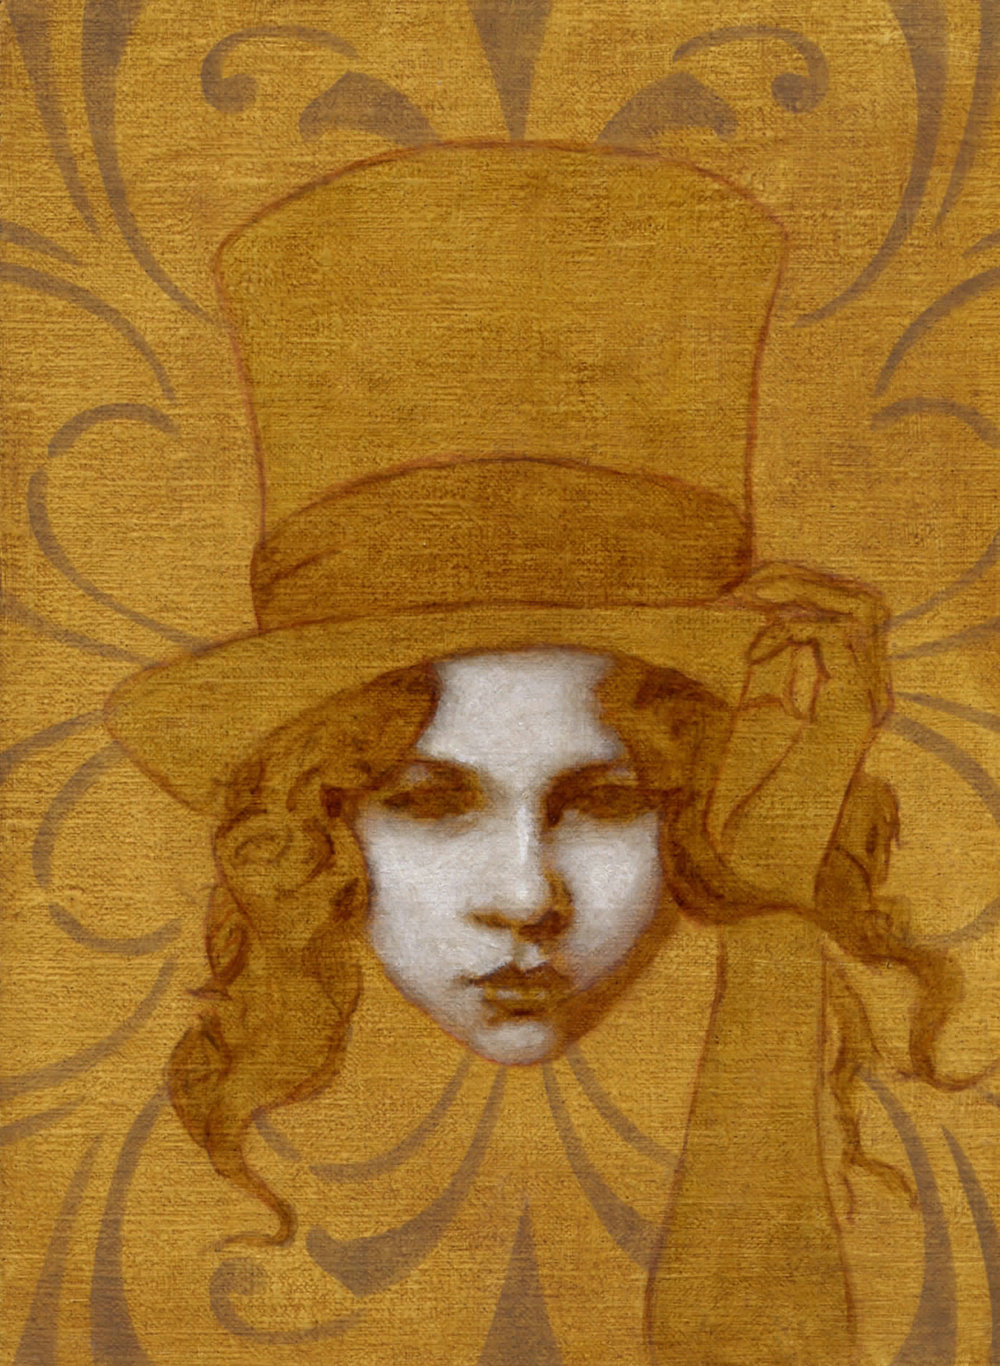 Girl in a Top Hat, 2016